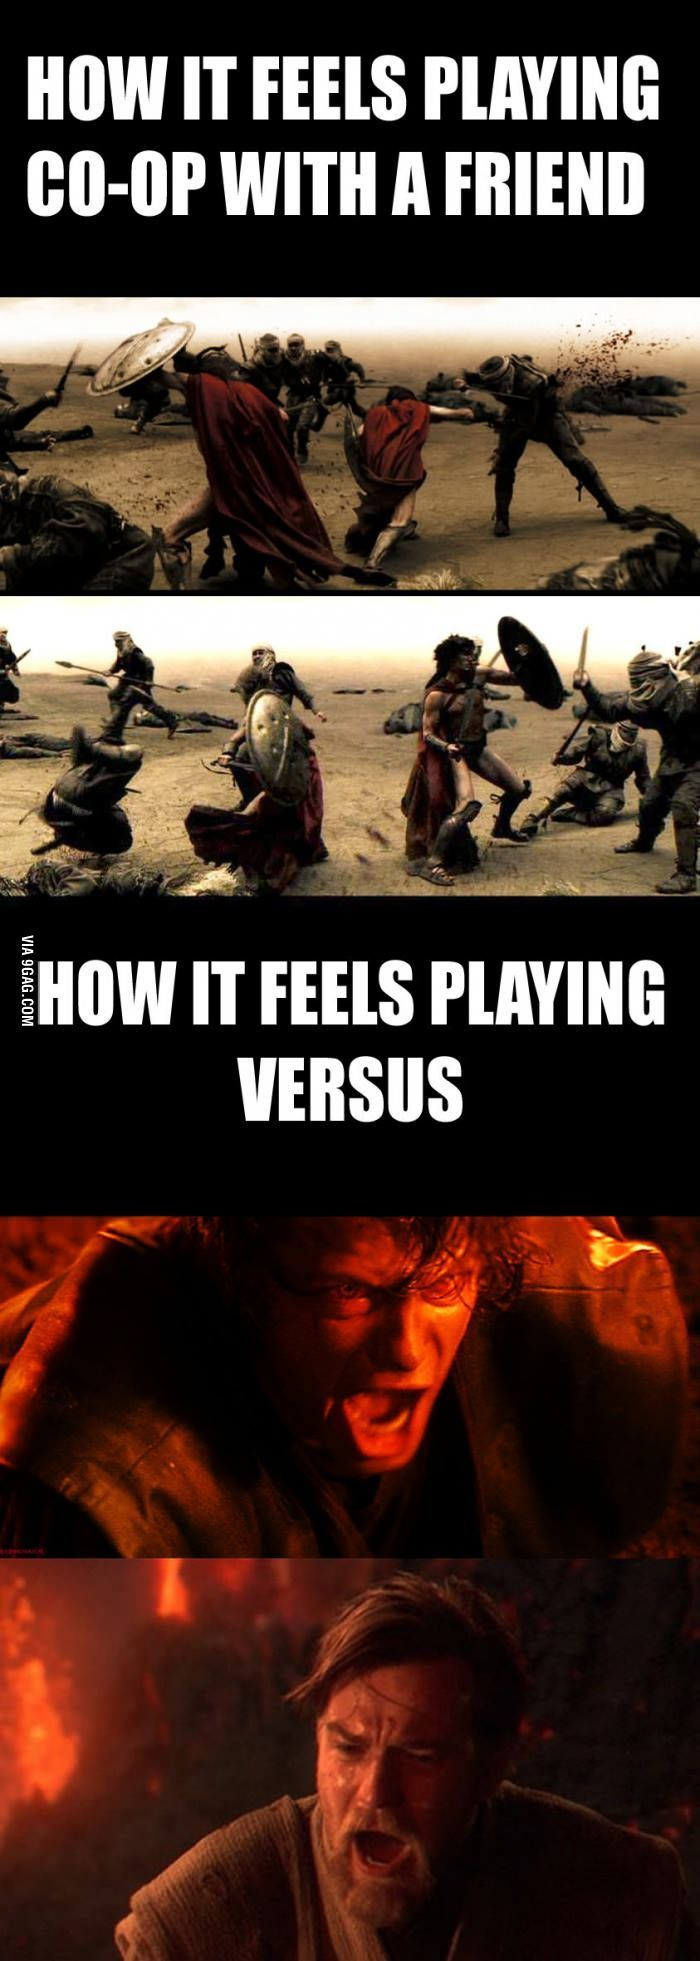 How friendships end in gaming